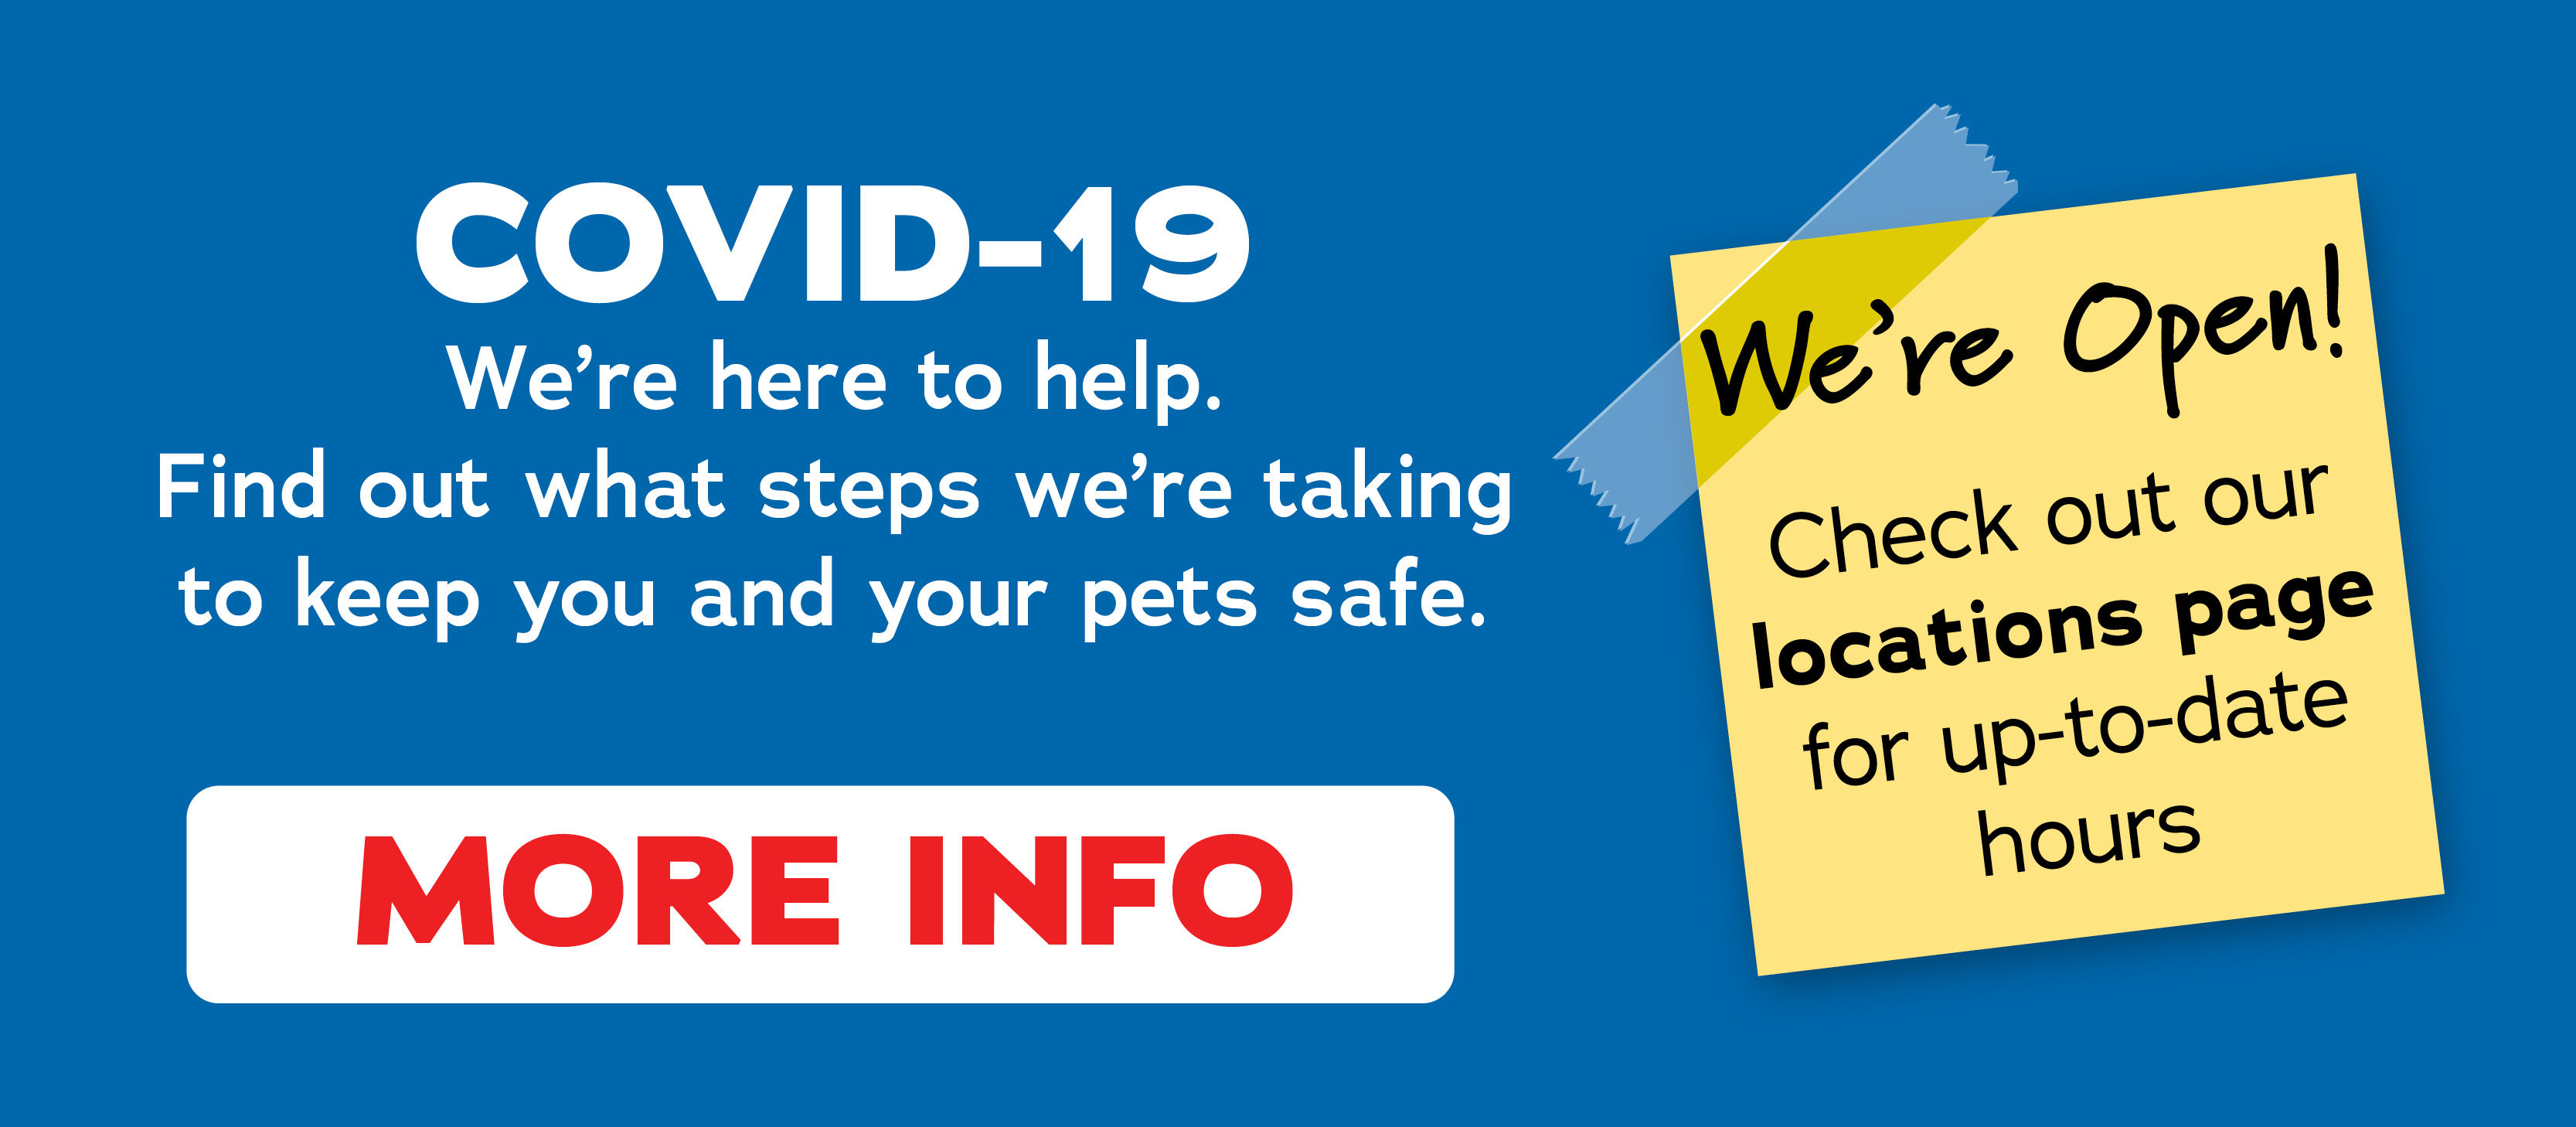 We're here to help. Find out what steps we're taking to keep you and your pets safe.